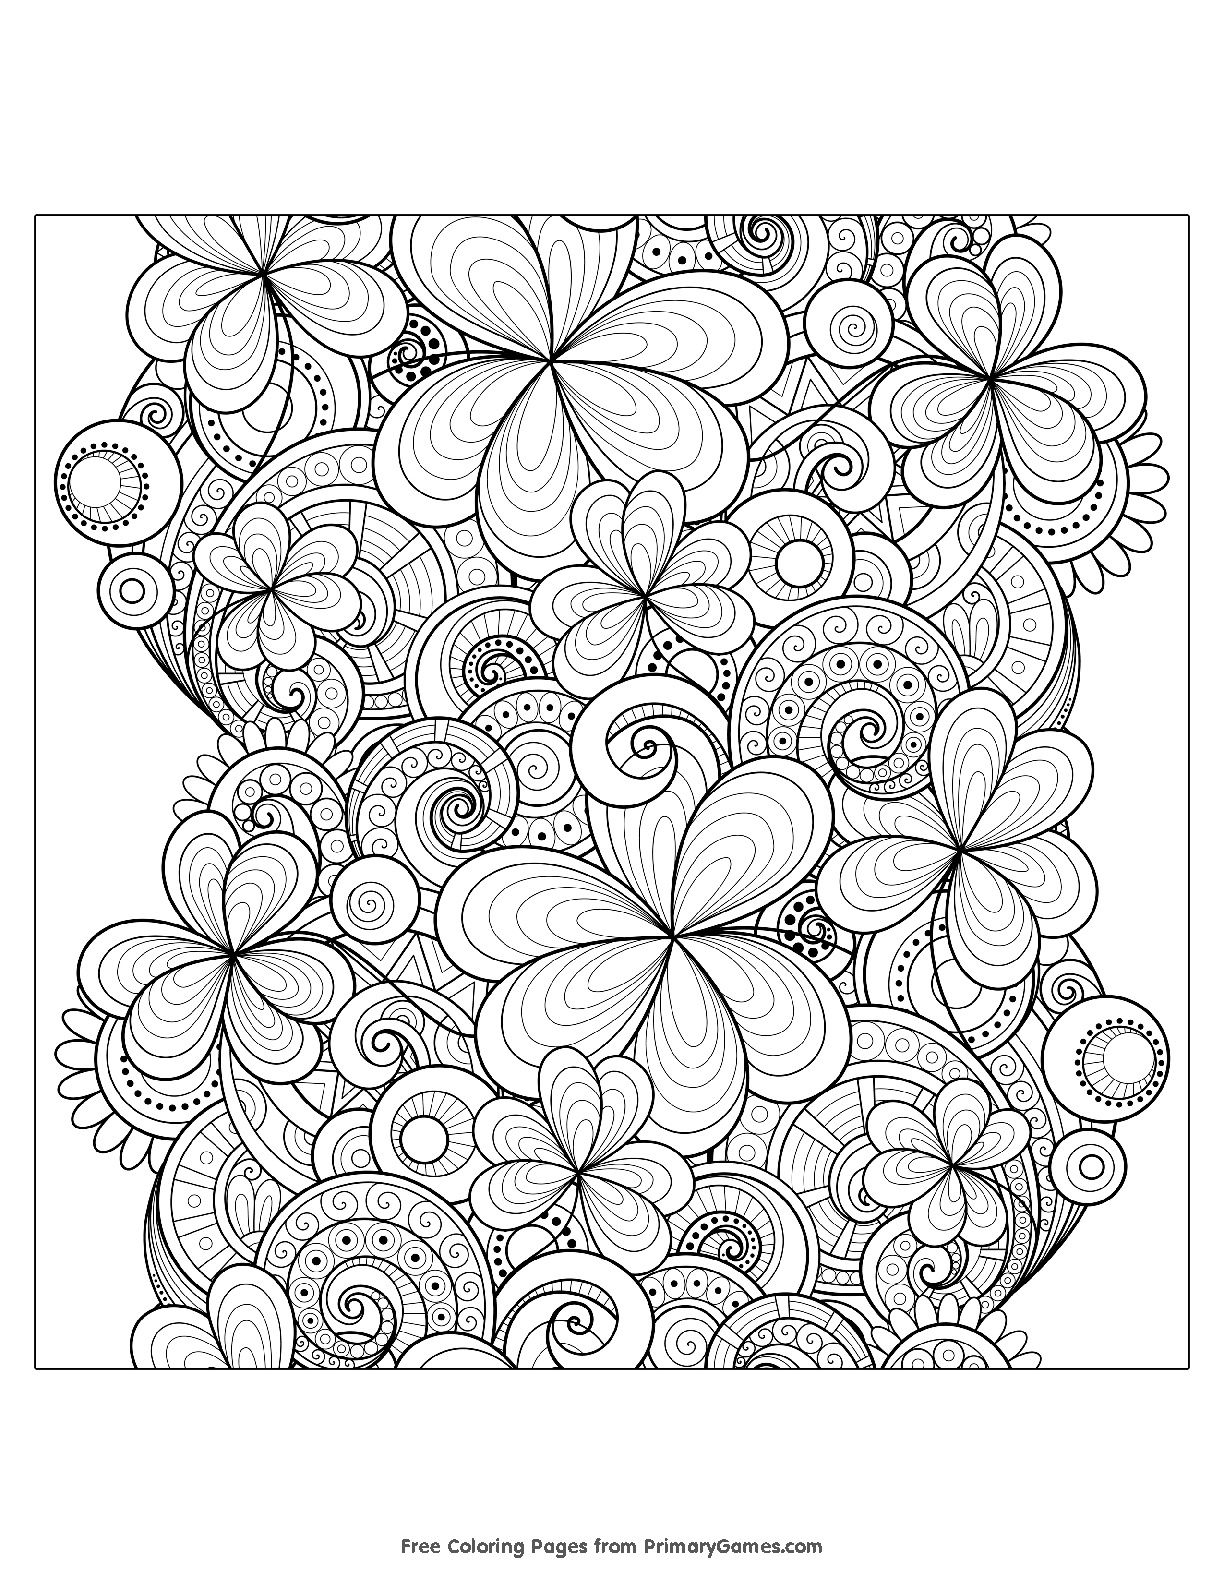 Pin By Joella Durphy On Coloe Pages With Images Coloring Pages